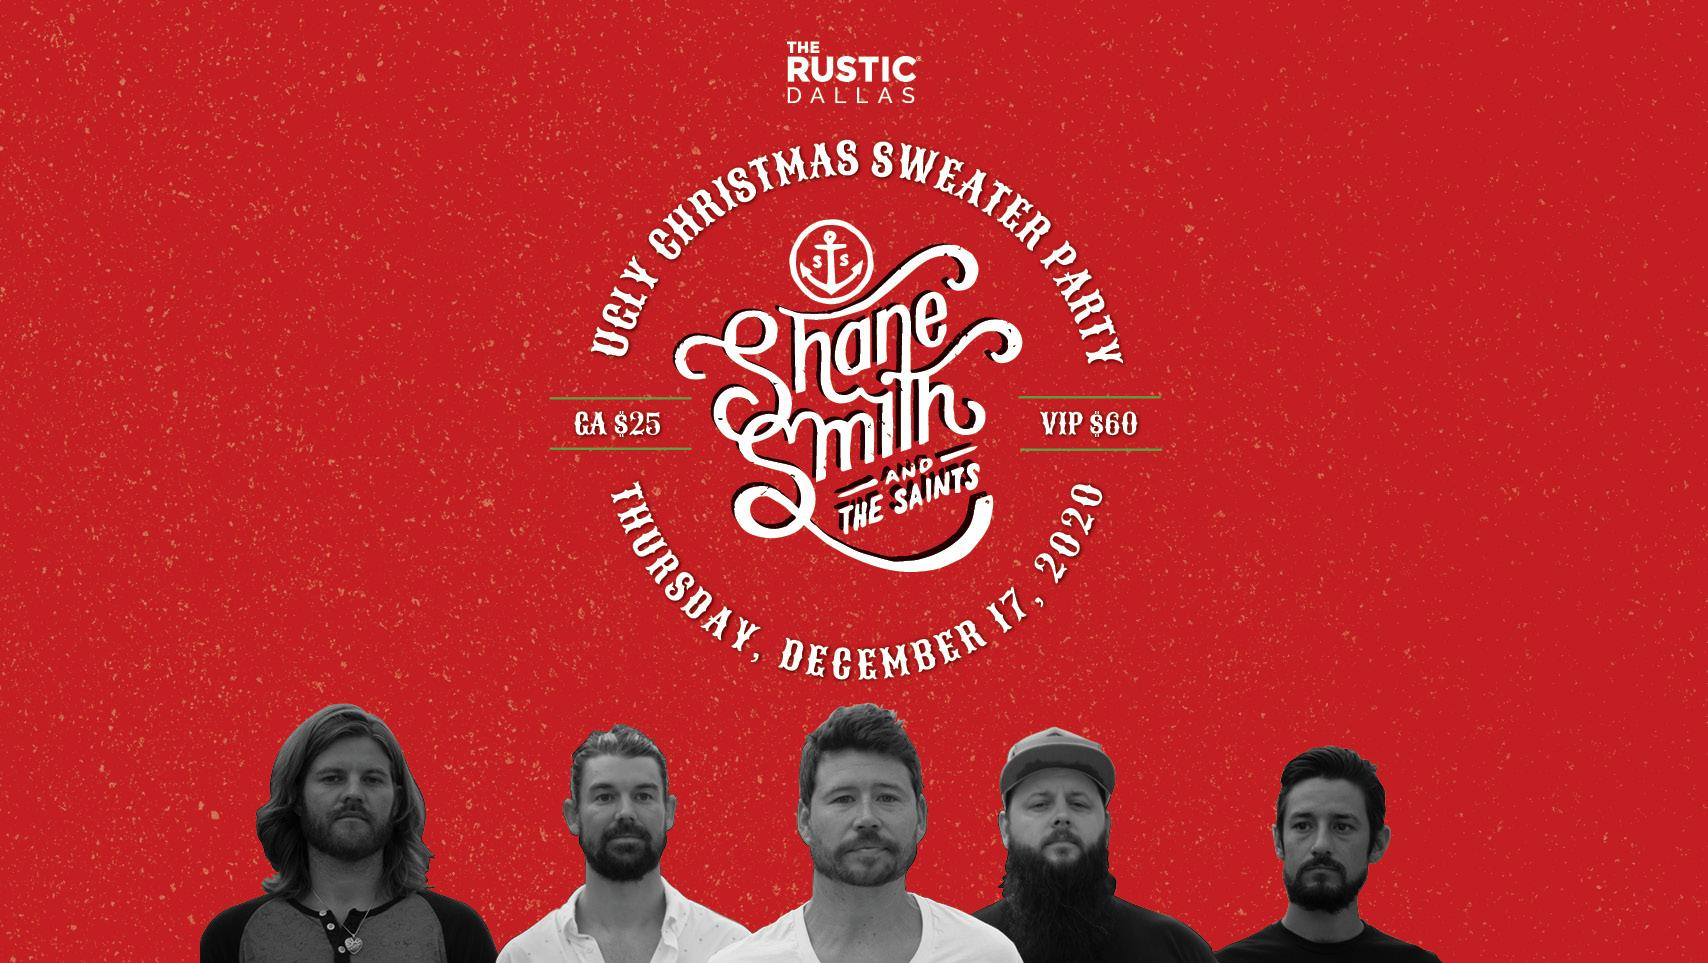 Christmas Concerts 2020 Dallas Tx Ugly Christmas Sweater Party with Shane Smith & The Saints